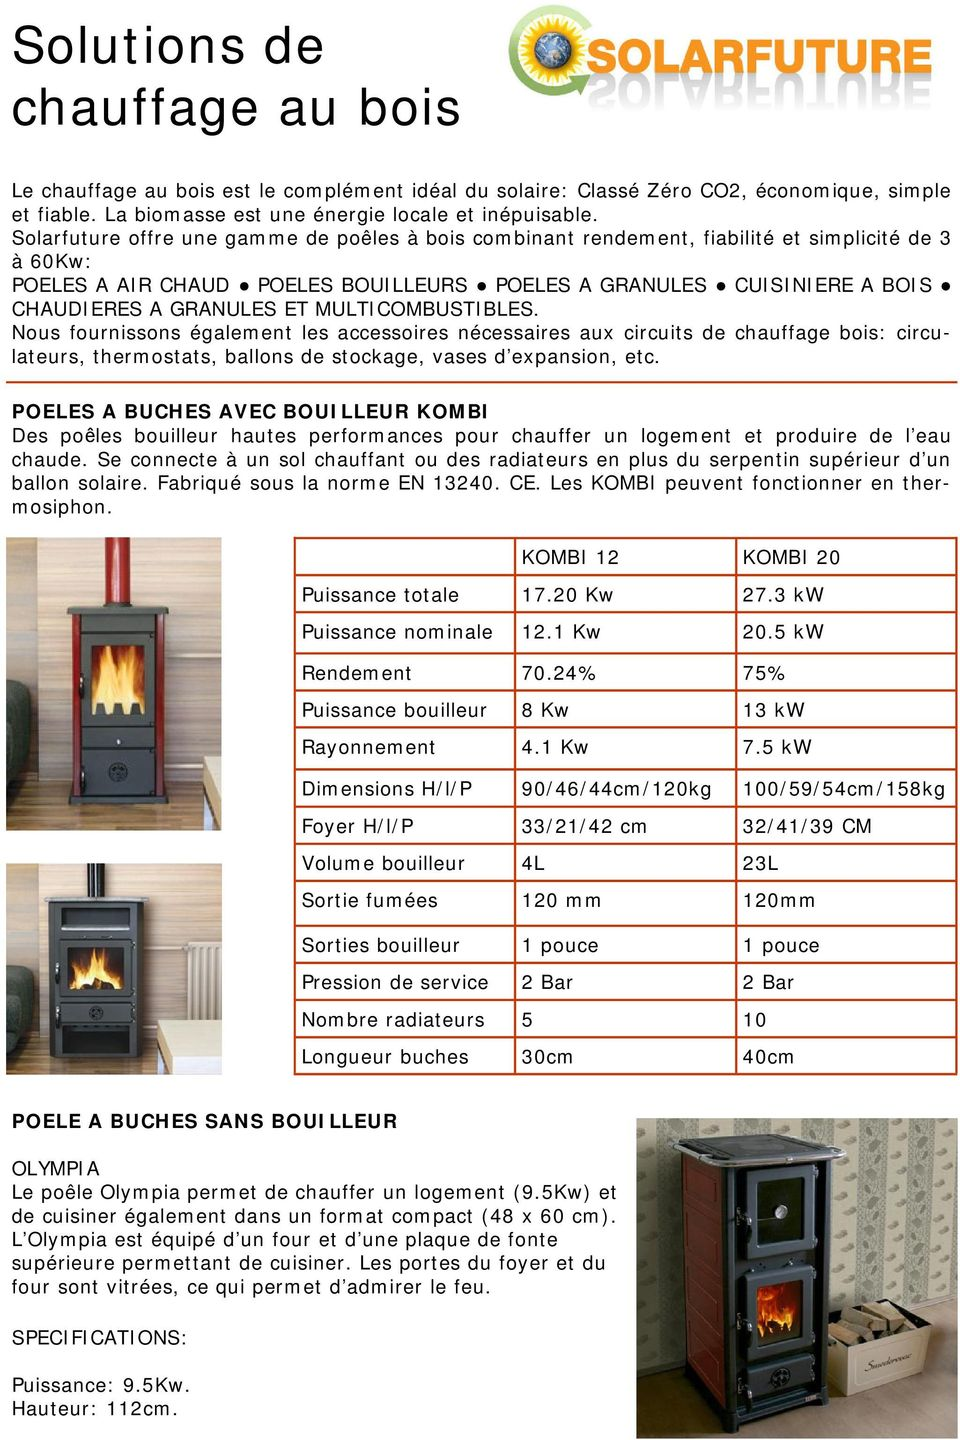 MULTICOMBUSTIBLES. Nous fournissons également les accessoires nécessaires aux circuits de chauffage bois: circulateurs, thermostats, ballons de stockage, vases d expansion, etc.